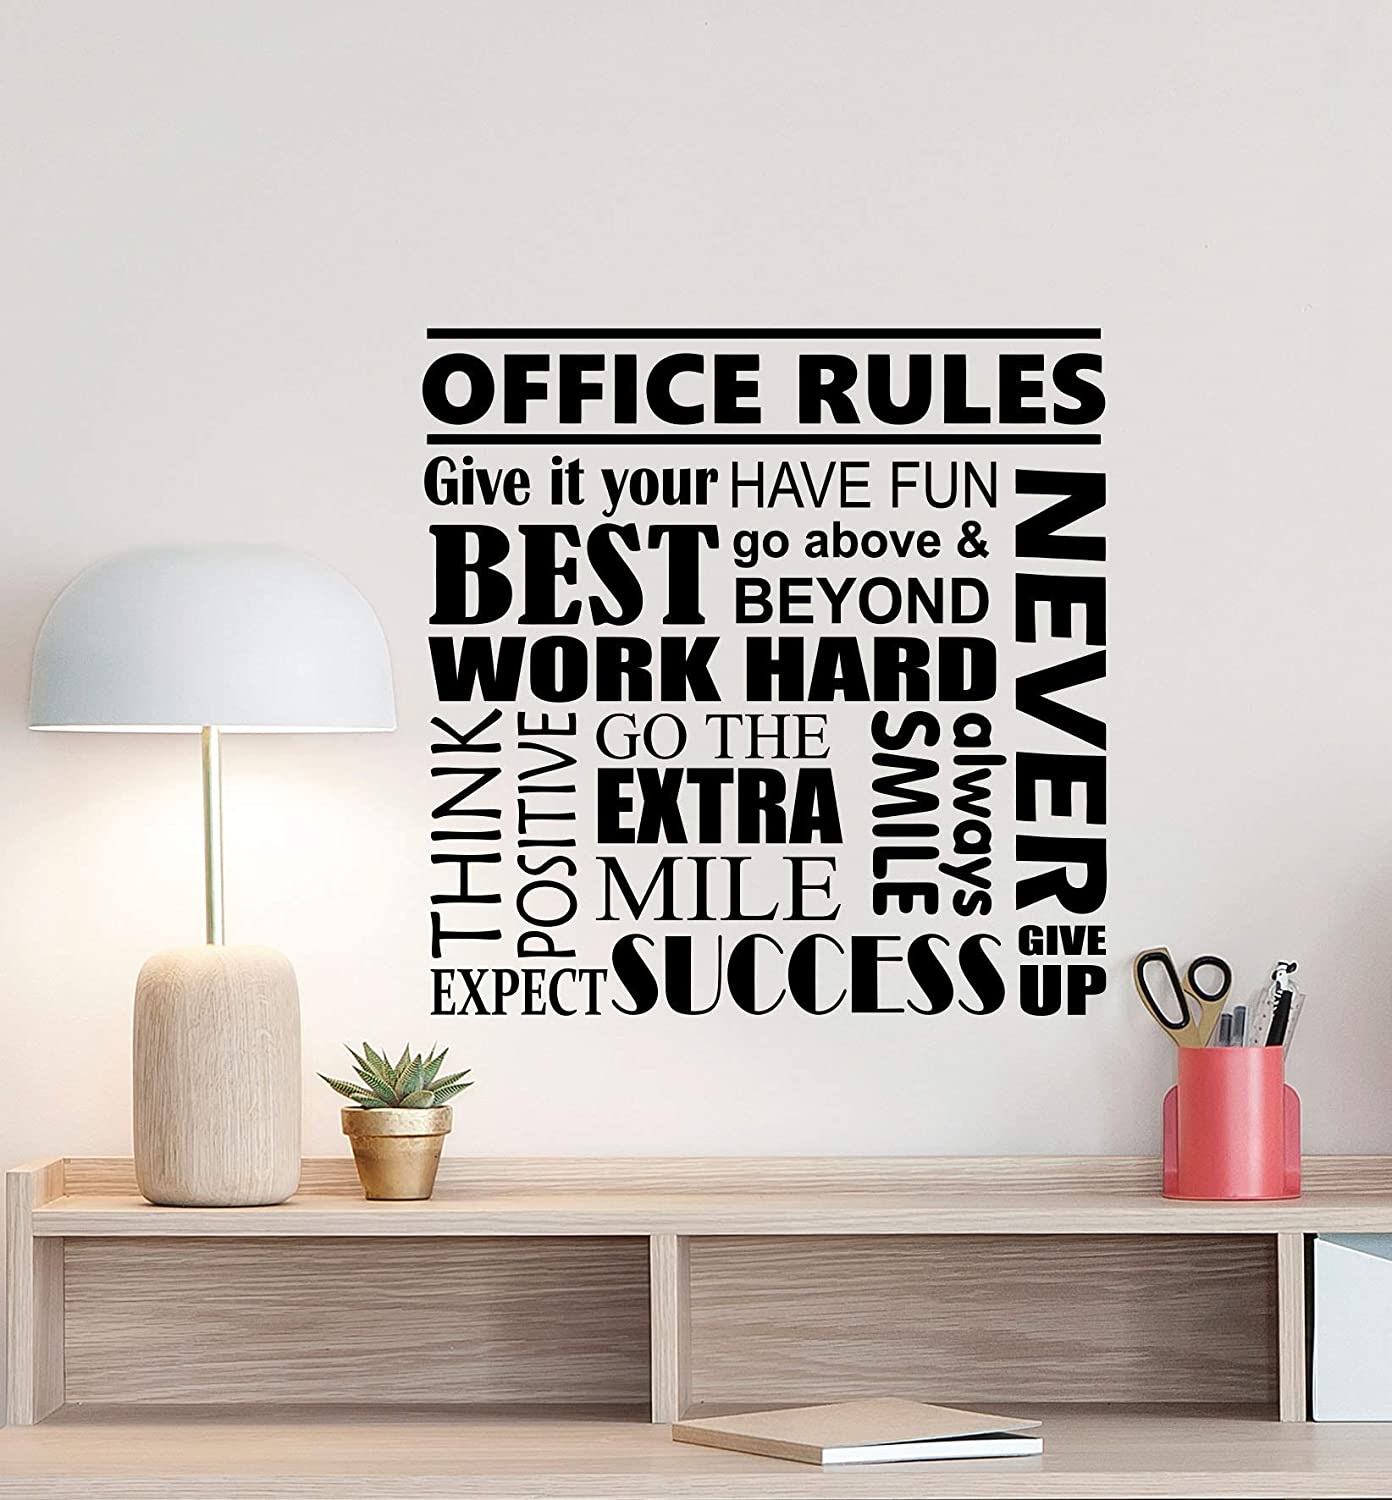 Amazon Com Office Rules Wall Decal Motivational Poster Office Sign Teamwork Success Quote Vinyl Sticker Business Decor Work Home Office Wall Made In Usa Fast Delivery Home Kitchen